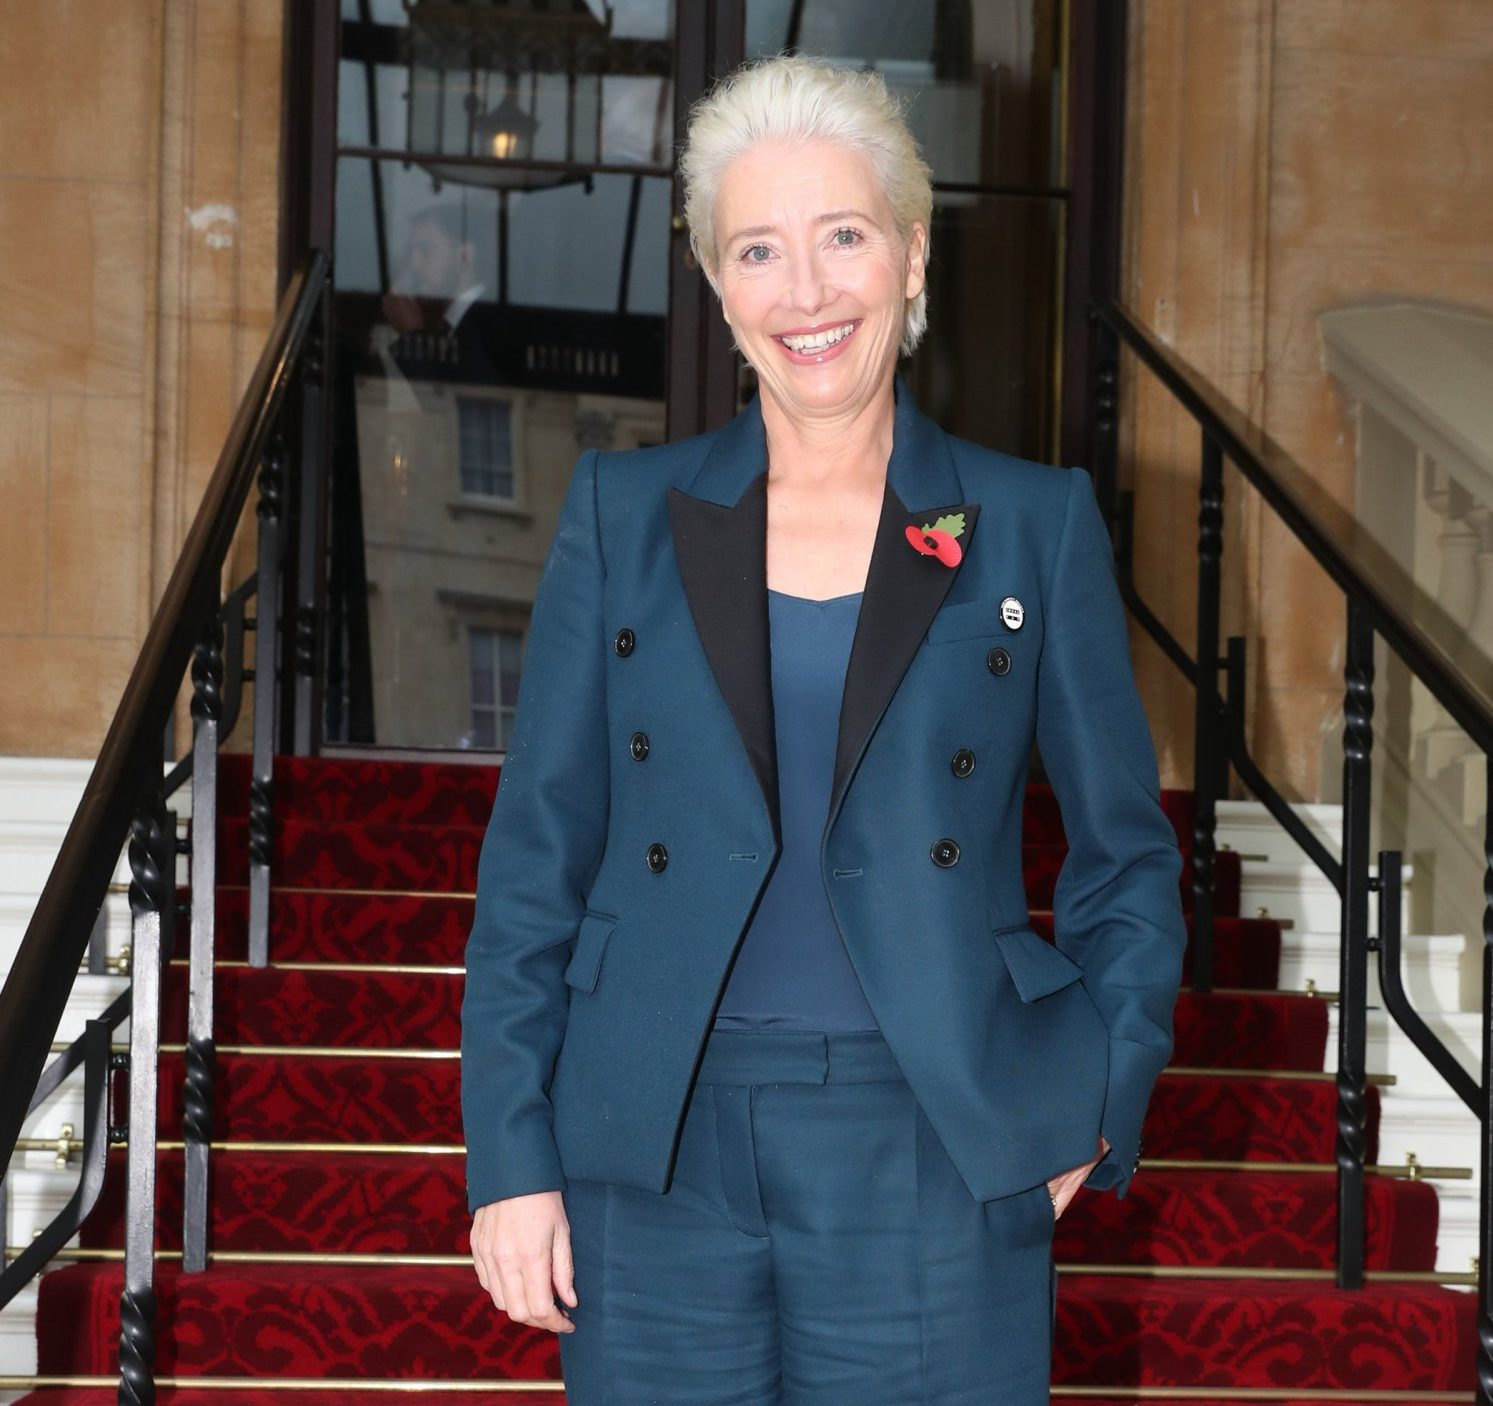 Actress Emma Thompson arrives at Buckingham Palace, London, to receive her damehood at an Investiture ceremony. PRESS ASSOCIATION Photo. Picture date: Wednesday November 7, 2018. Ms Thompson, 59, will collect the accolade in recognition of her services to drama. See PA story ROYAL Investiture. Photo credit should read: Steve Parsons/PA Wire